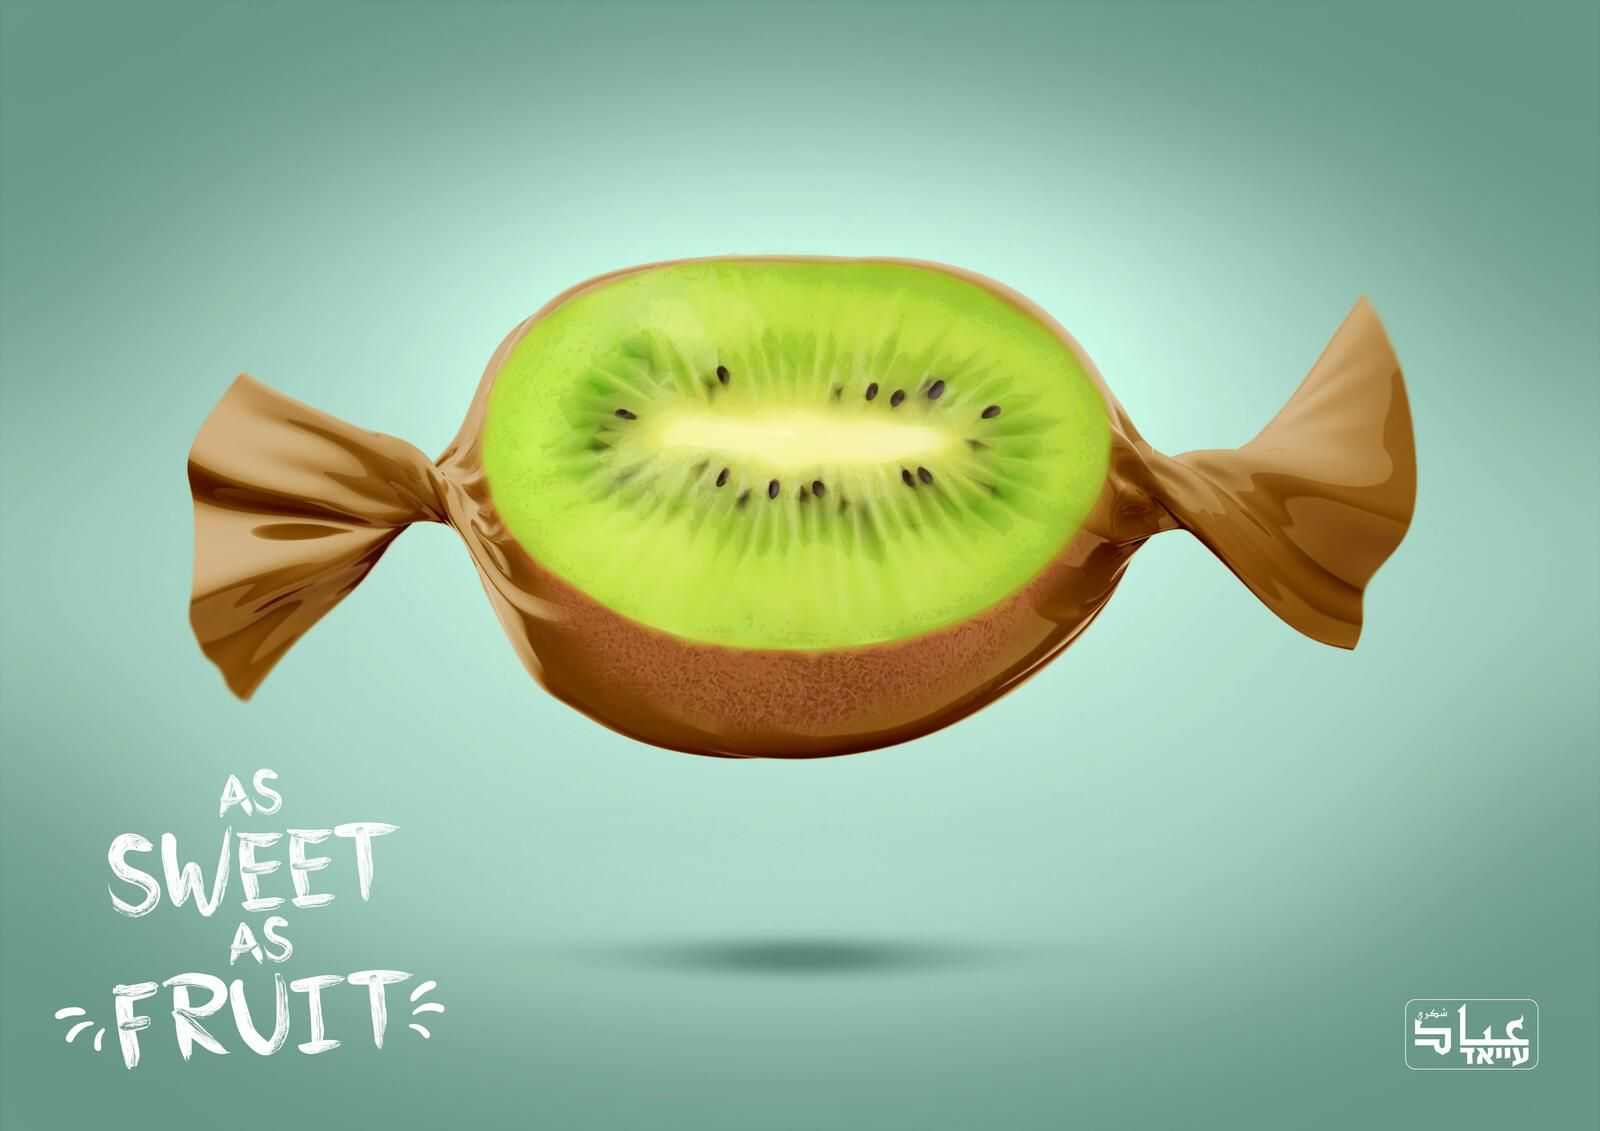 """Aiad Roastery :  """"As sweet as a fruit"""" (bonbons) I Agence : Elevate Agency Palestine (janvier 2021)"""